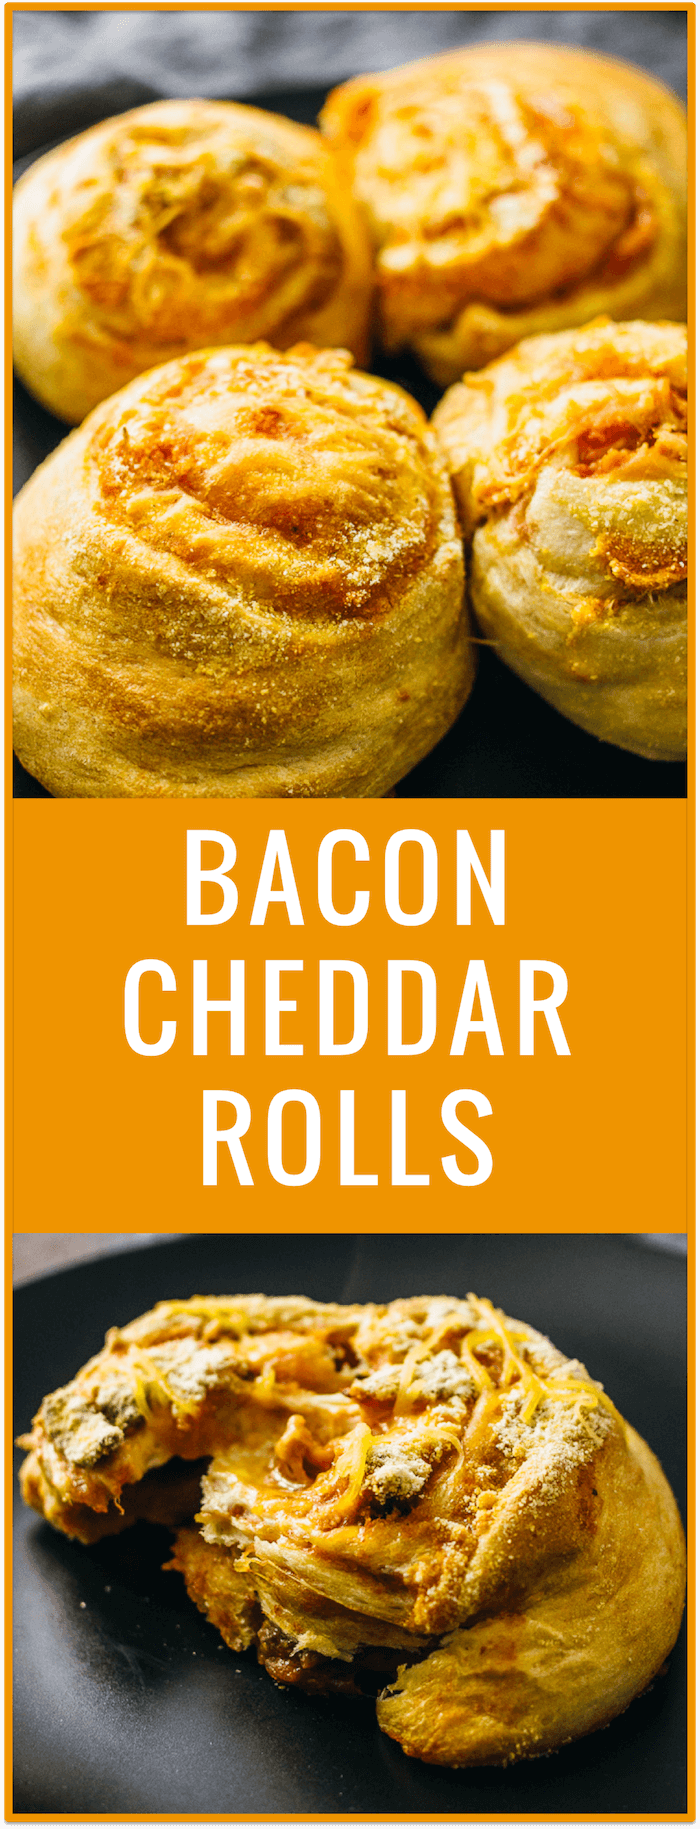 Here's a delicious and easy recipe for breakfast rolls that are generously stuffed with extra crispy bacon crumbles, lots of cheddar cheese, and tomato sauce.